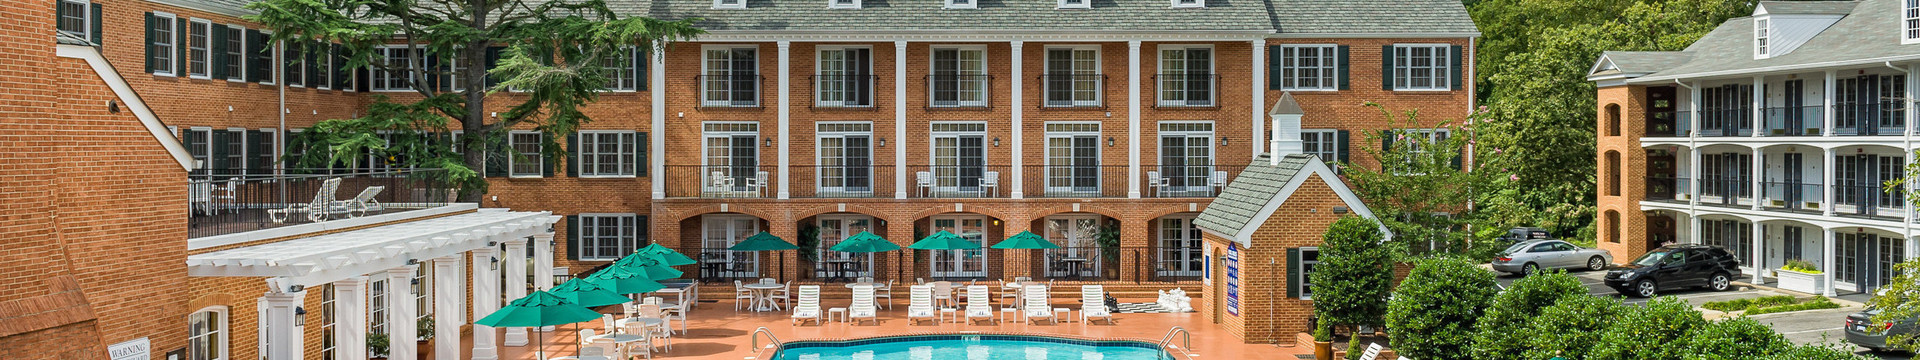 Williamsburg Hotel Deals - Westgate Historic Williamsburg Resort